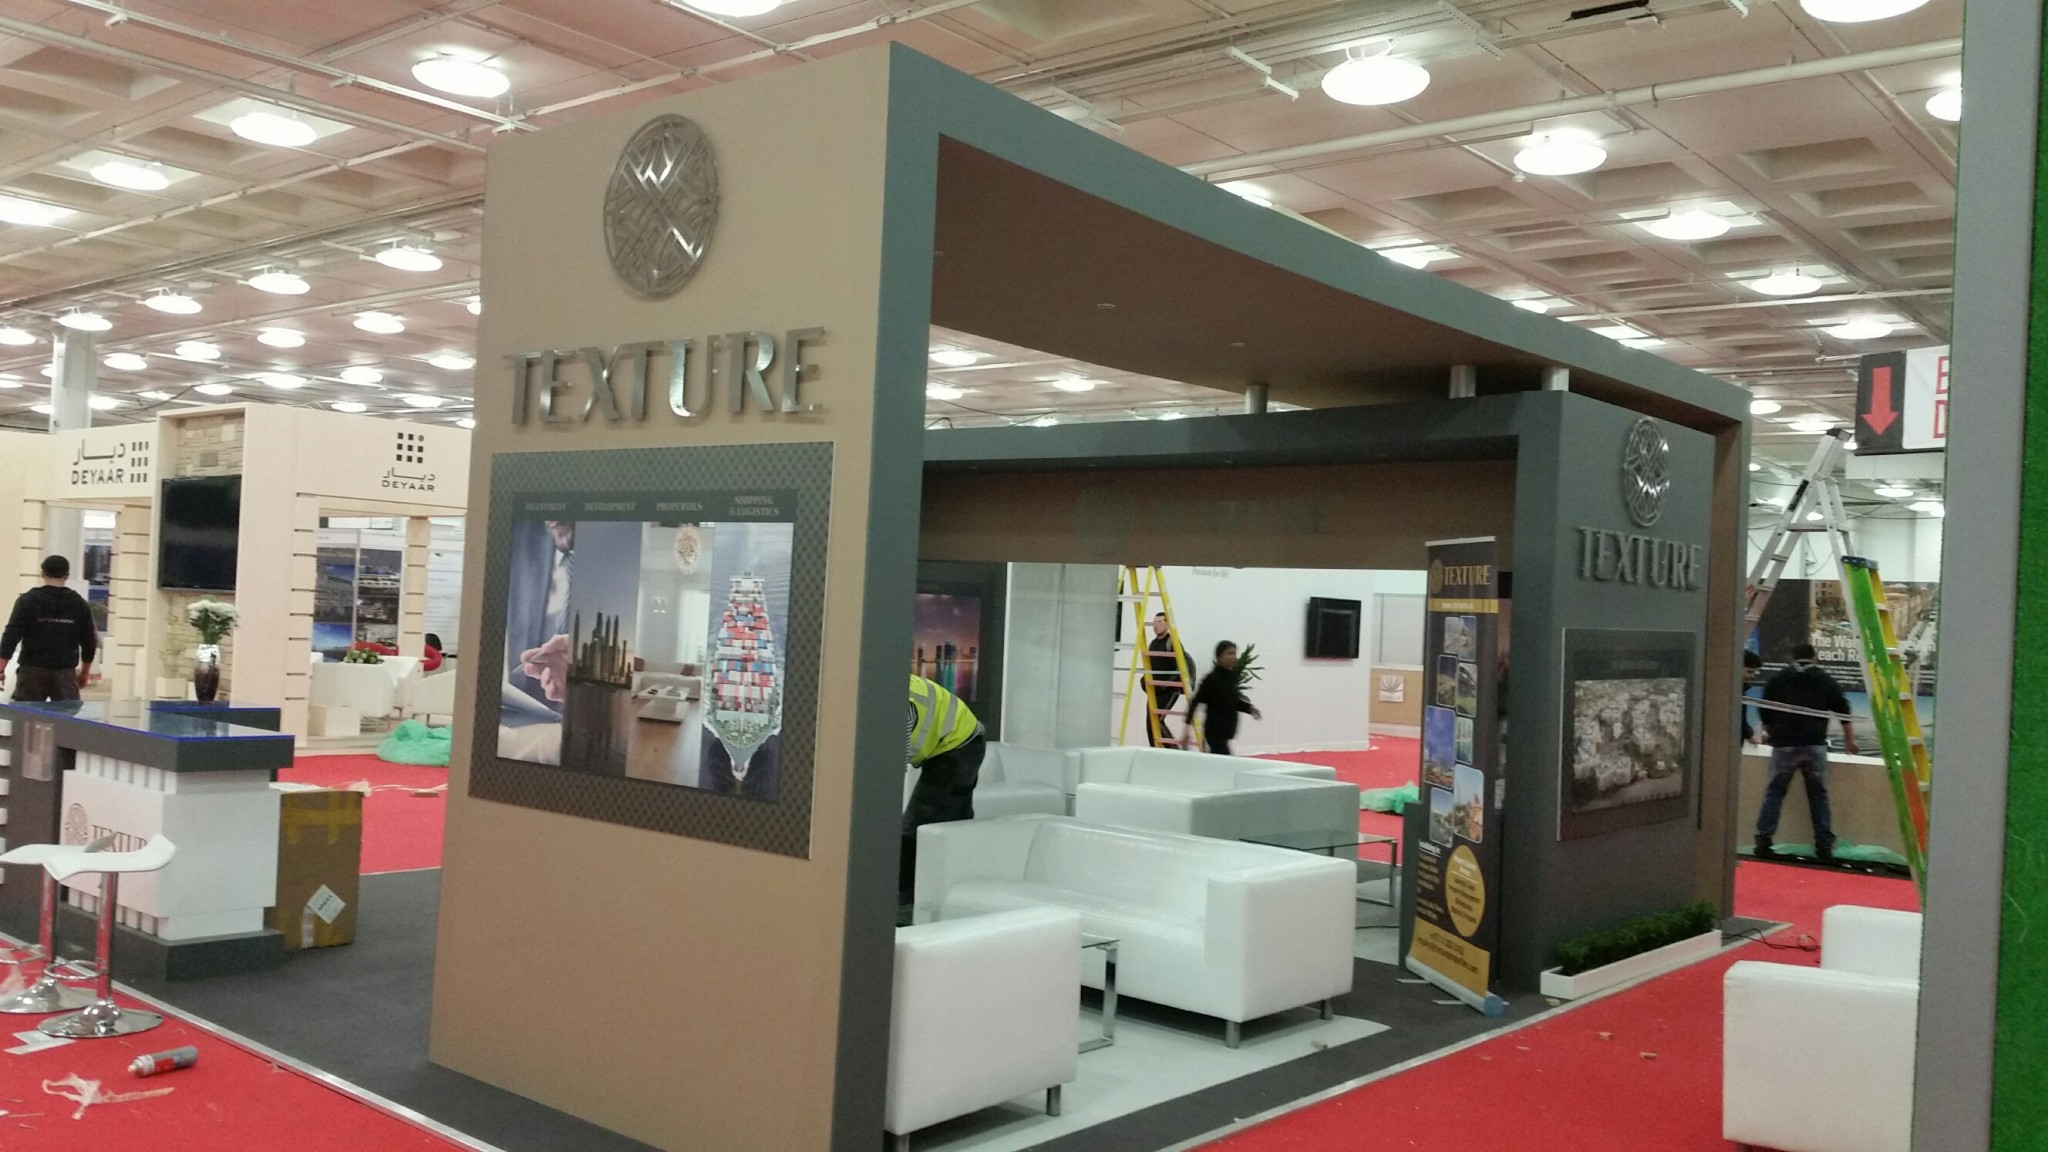 TEXTURE -DPS exhibition 2015,olympia London